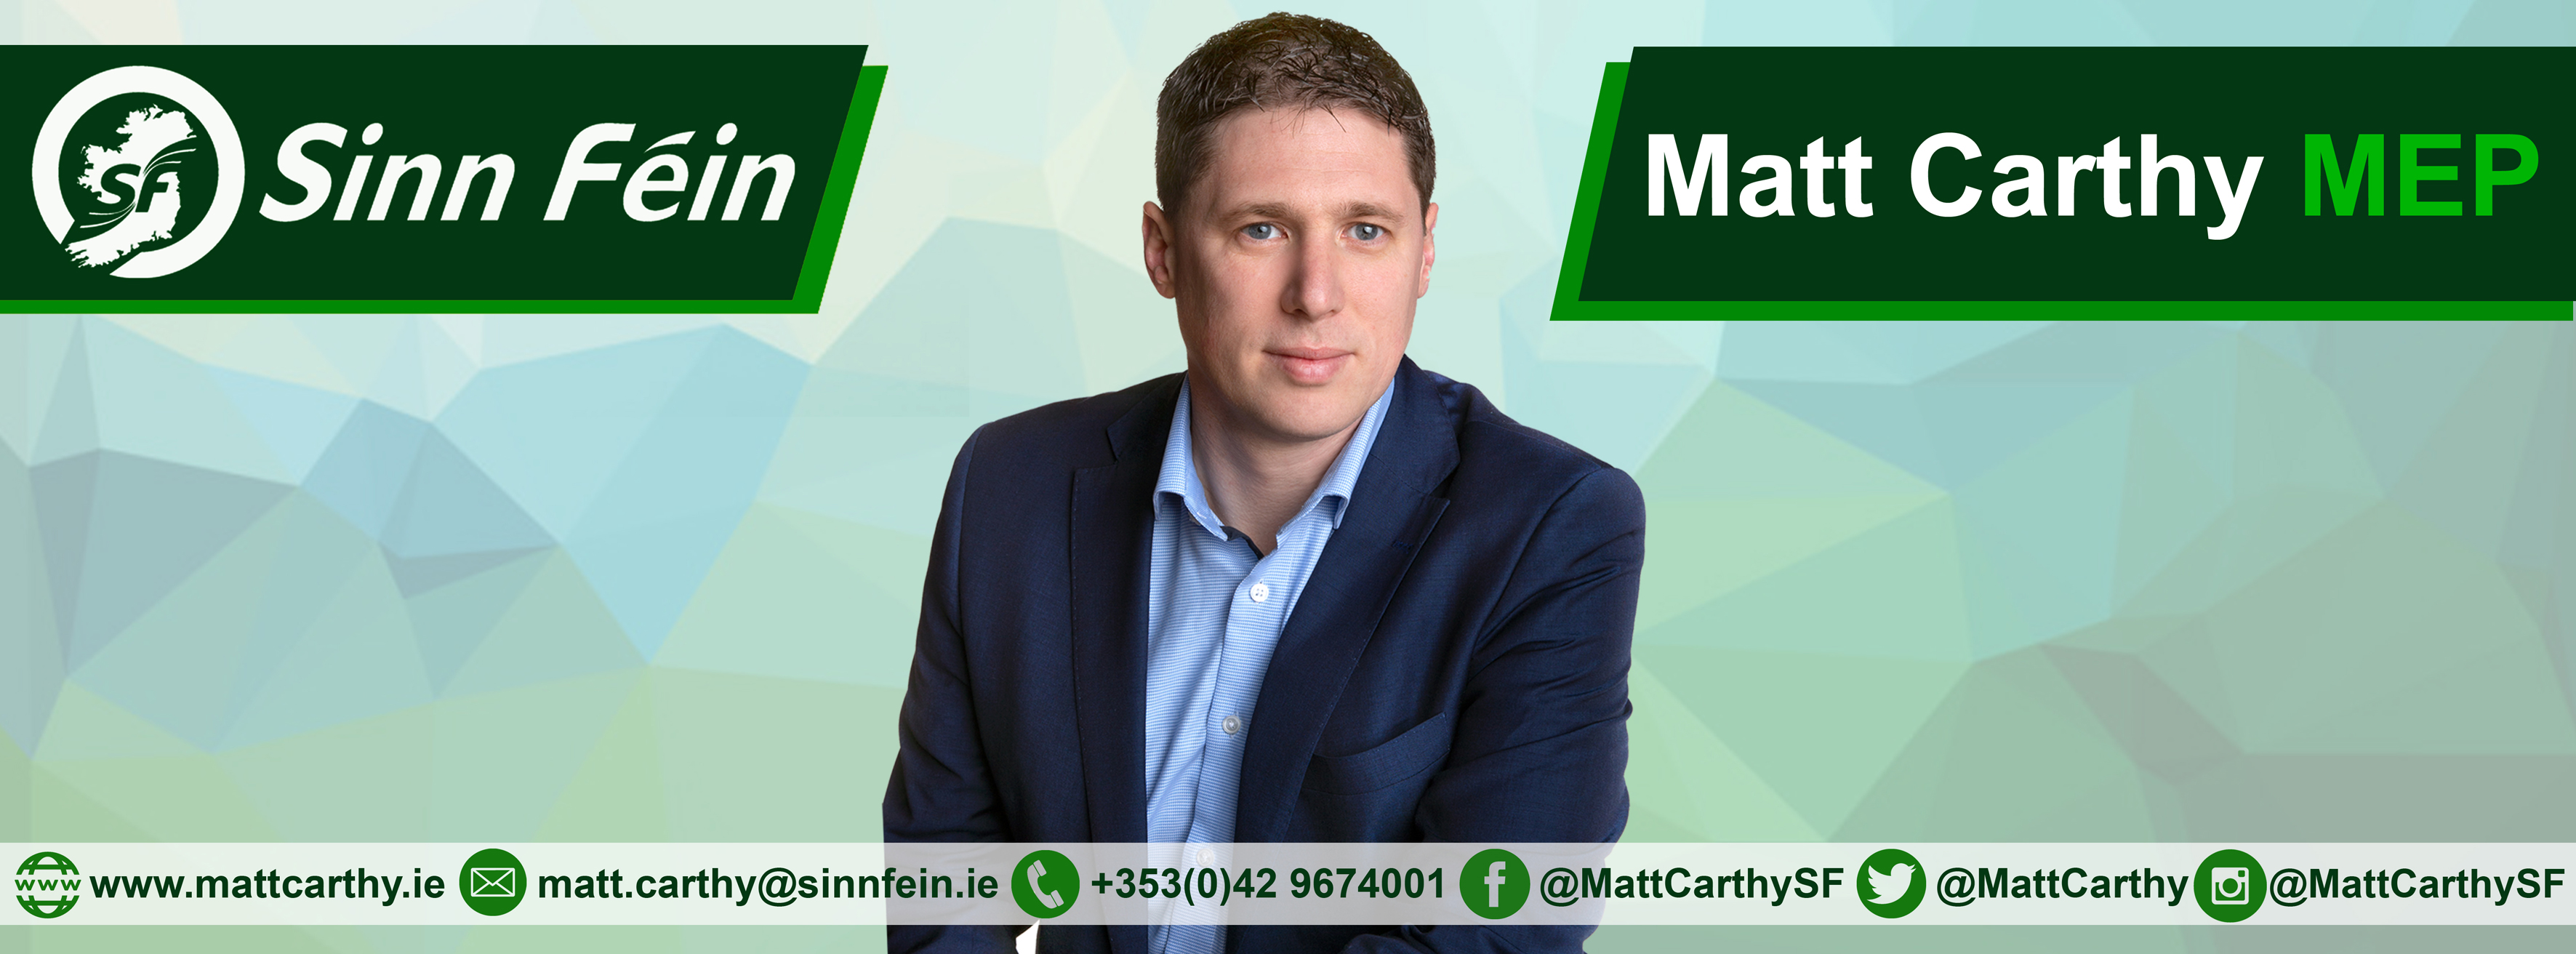 Matt Carthy MEP - Latest News